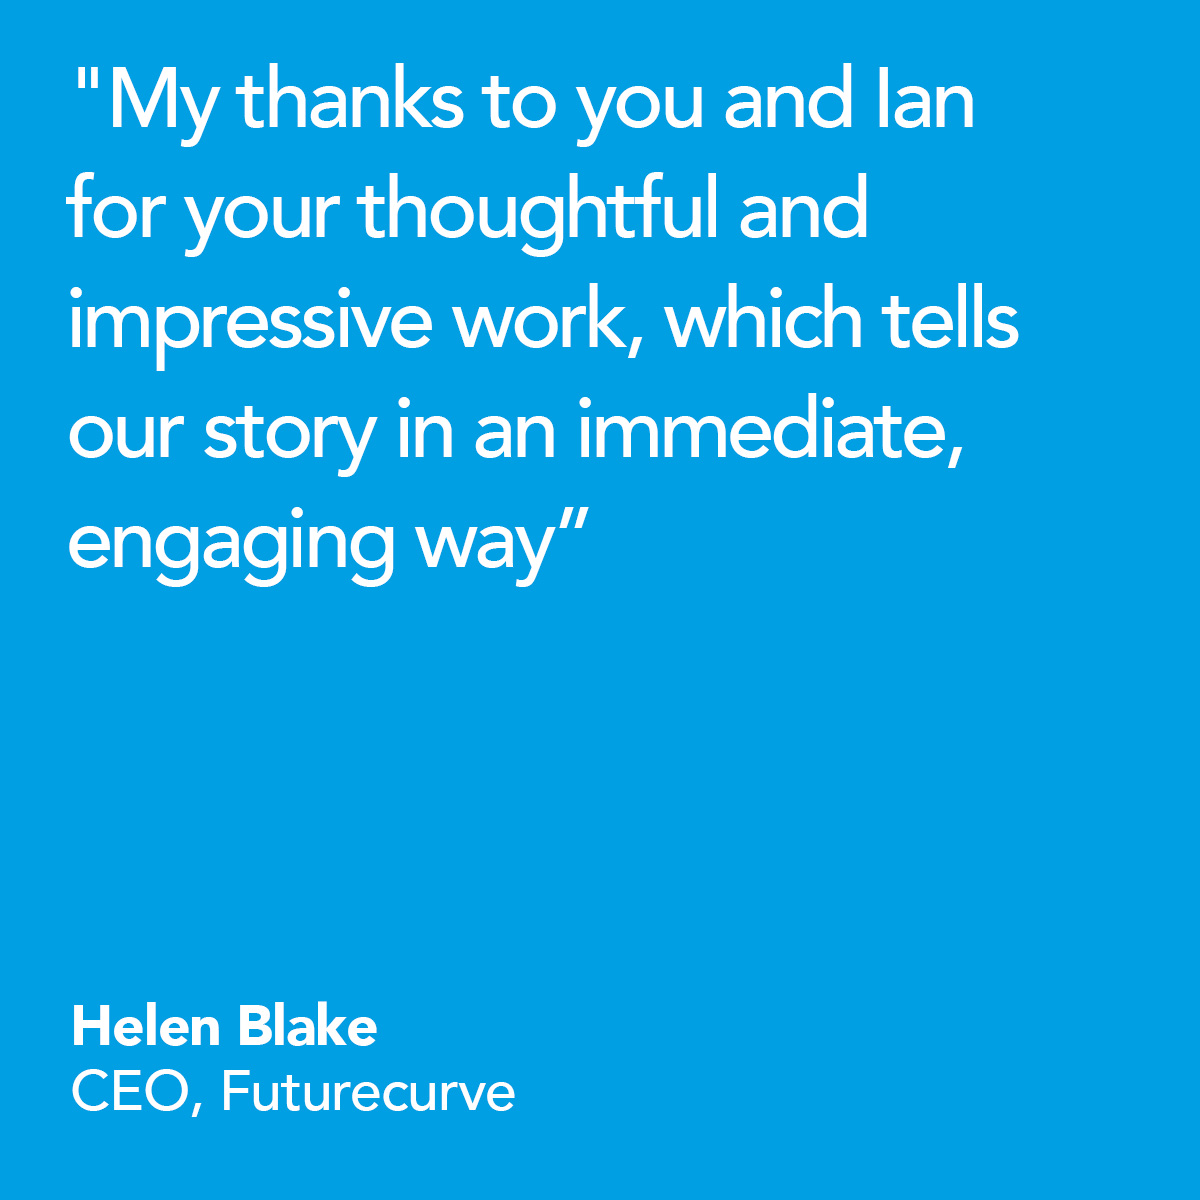 My thanks to you and Ian for your thoughtful and impressive work, which tells our story in an immediate, engaging way. Helen Blake, CEO, Futurecurve